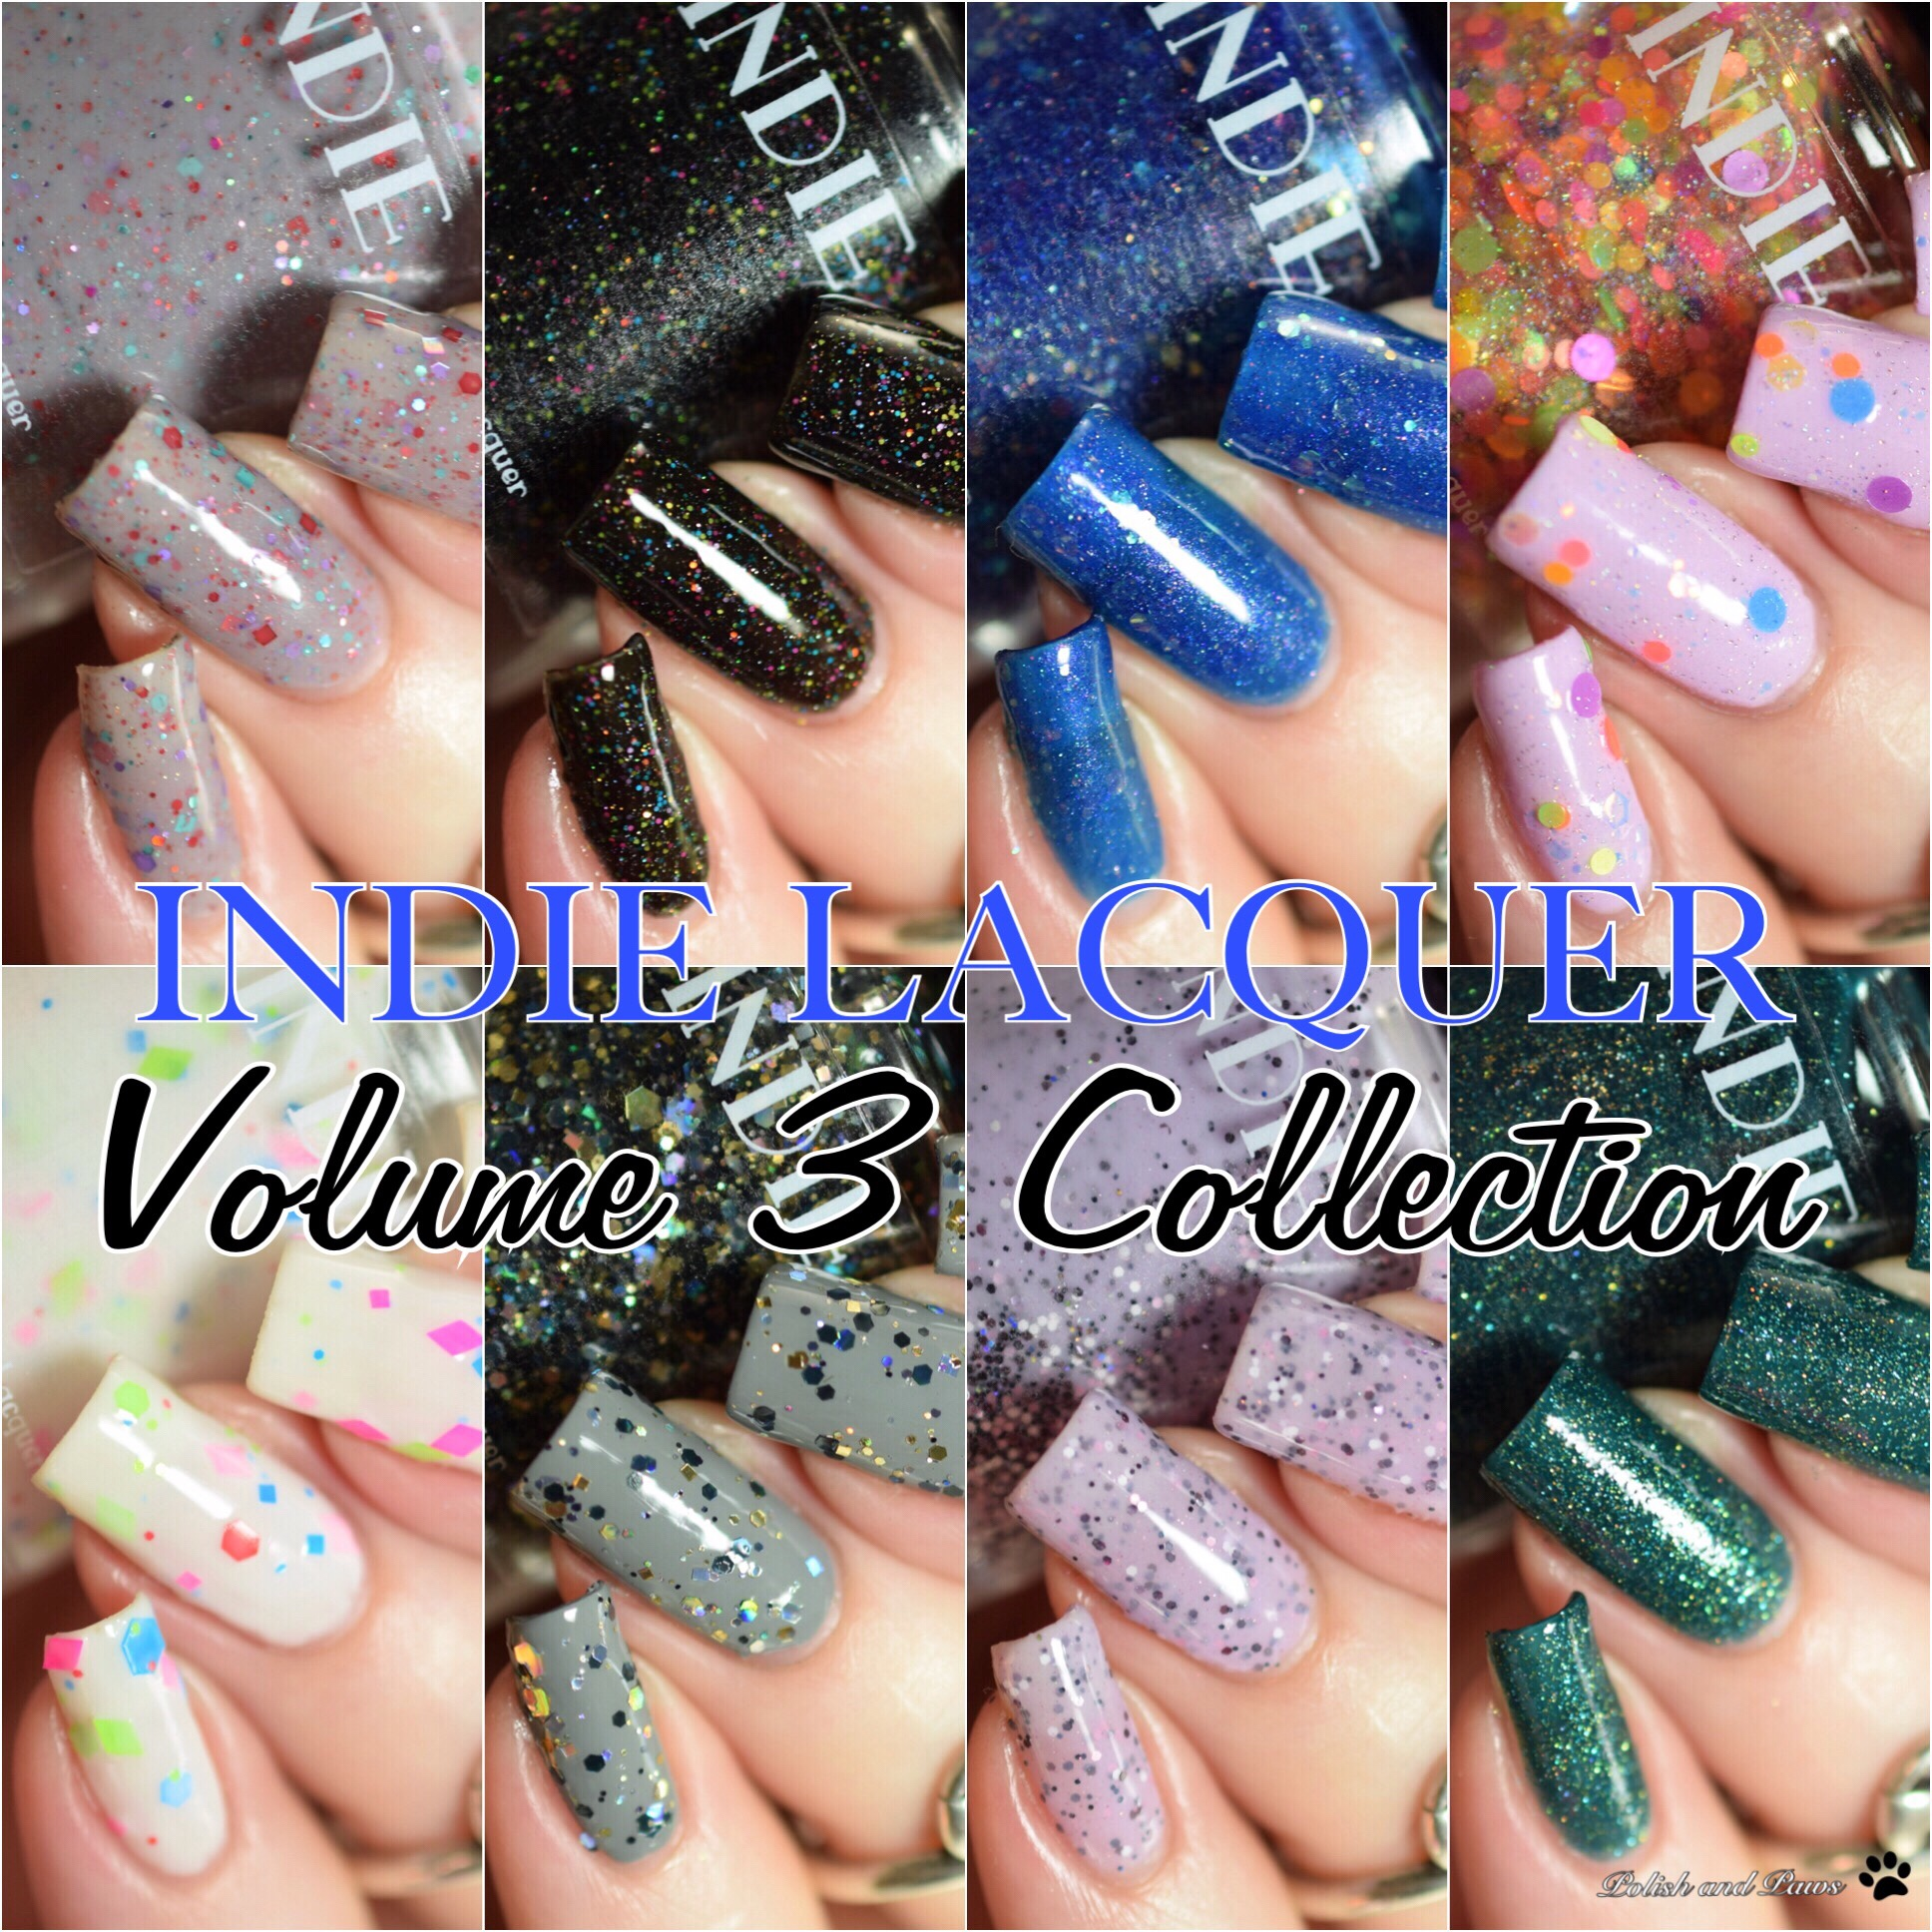 Indie Lacquer Volume 3 Collection